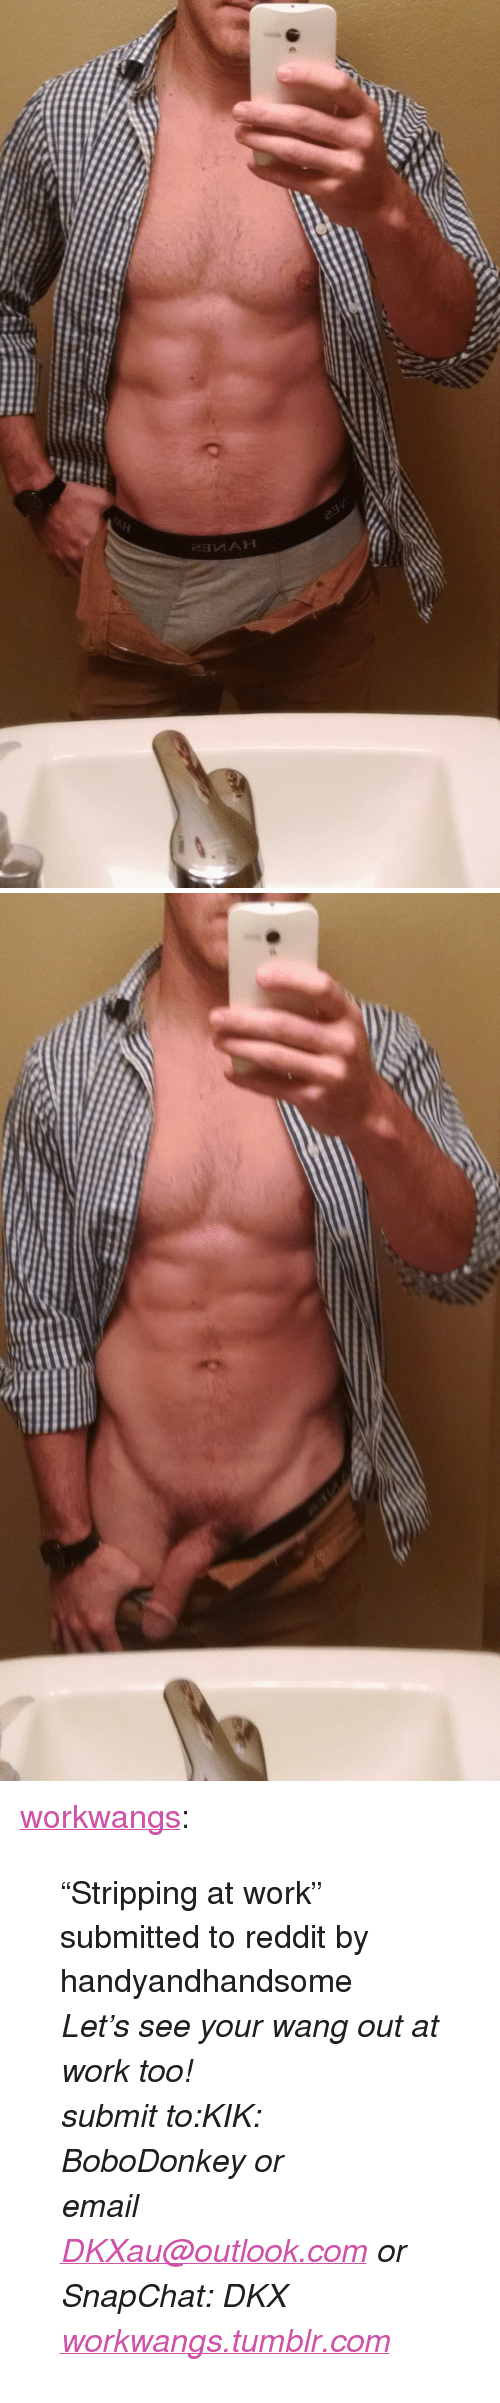 """outlook.com: <p><a href=""""http://workwangs.tumblr.com/post/131844117722/stripping-at-work-submitted-to-reddit-by"""" class=""""tumblr_blog"""">workwangs</a>:</p>  <blockquote><p>""""Stripping at work"""" submitted to reddit by handyandhandsome<br/></p><p><i>Let's see your wang out at work too!<br/>submit to:KIK: BoboDonkey or <br/>email <a href=""""mailto:DKXau@outlook.com"""" title=""""DKXau@outlook.com"""">DKXau@outlook.com</a> or <br/>SnapChat: DKX</i></p><p><i><a href=""""https://www.tumblr.com/edit/workwangs.tumblr.com"""">workwangs.tumblr.com</a></i></p></blockquote>"""